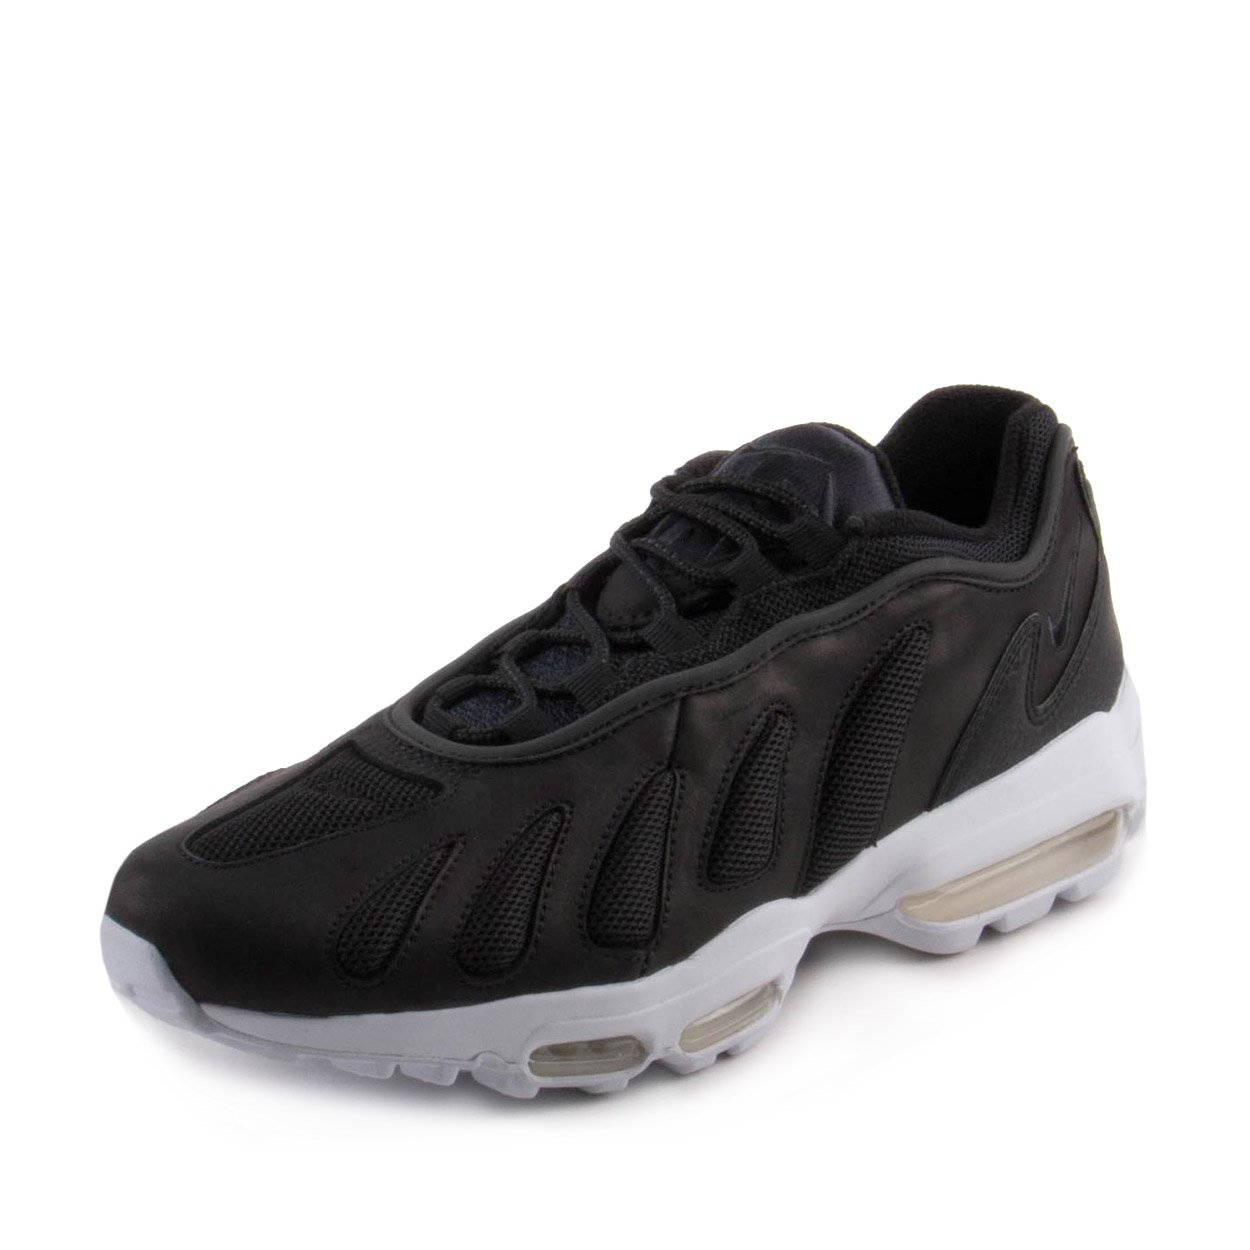 size 40 f052c f7d87 Amazon.com  Nike Mens Air Max 96 XX Black Leather Size 10.5  Fitness   Cross-Training